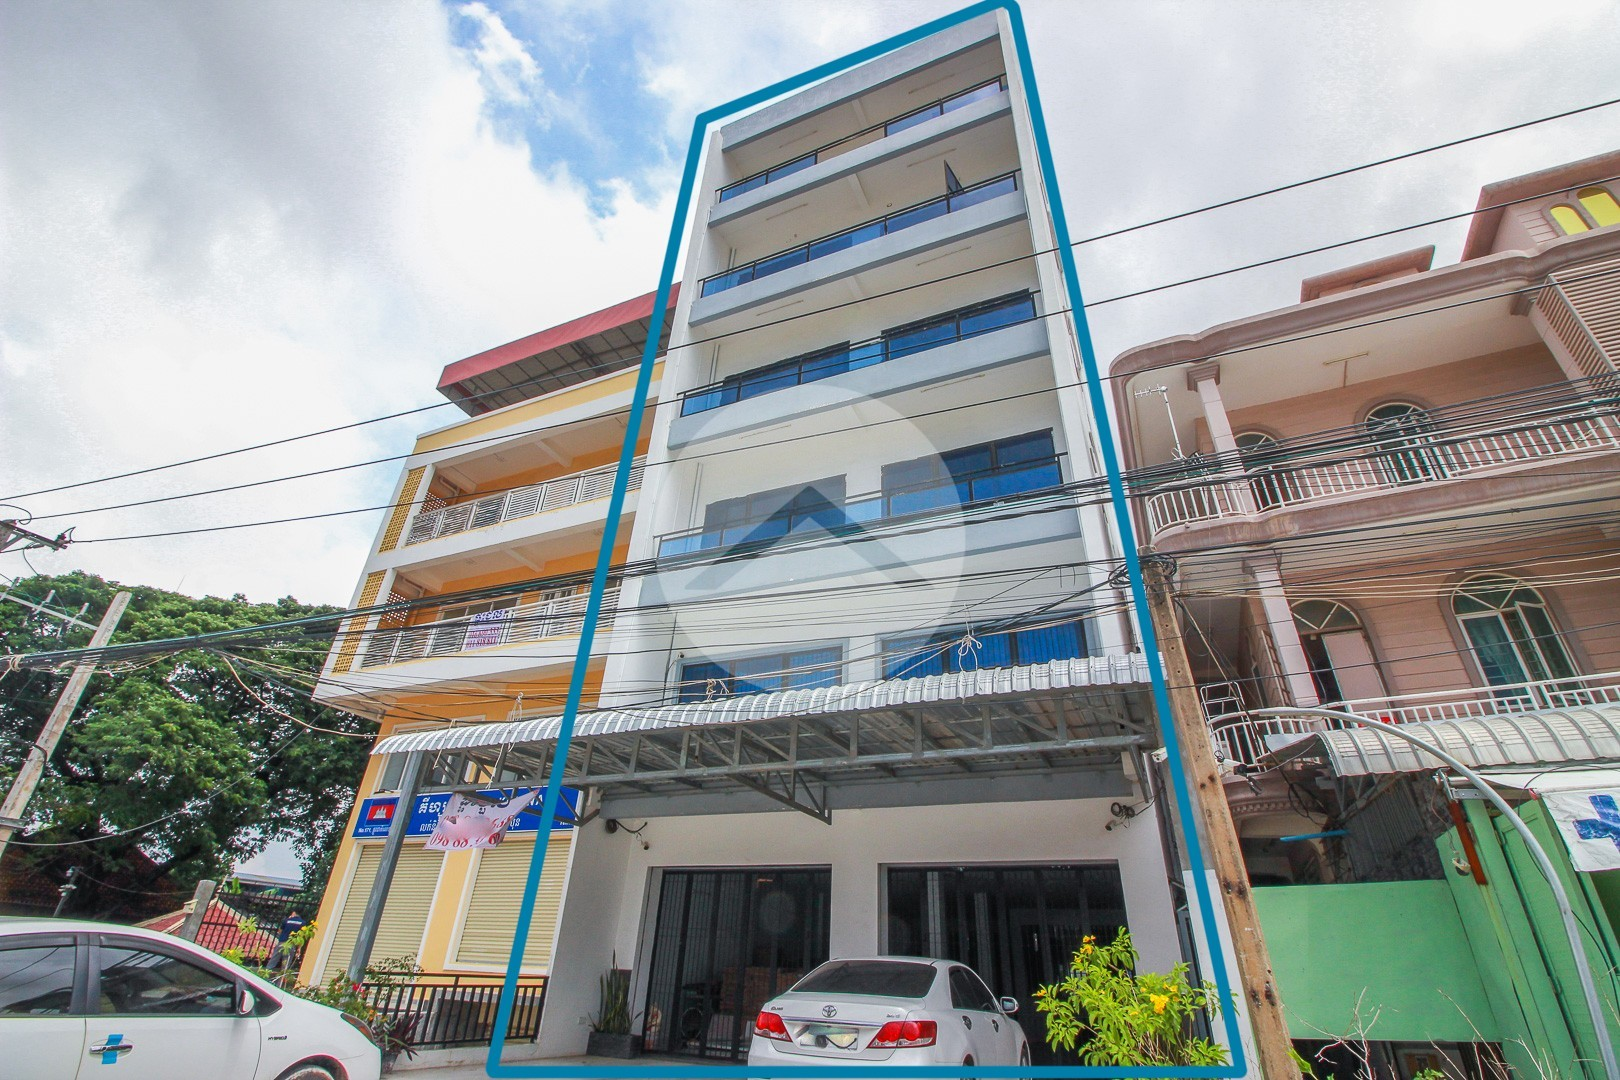 6 Storey Building For Rent - Nirouth, Phnom Penh